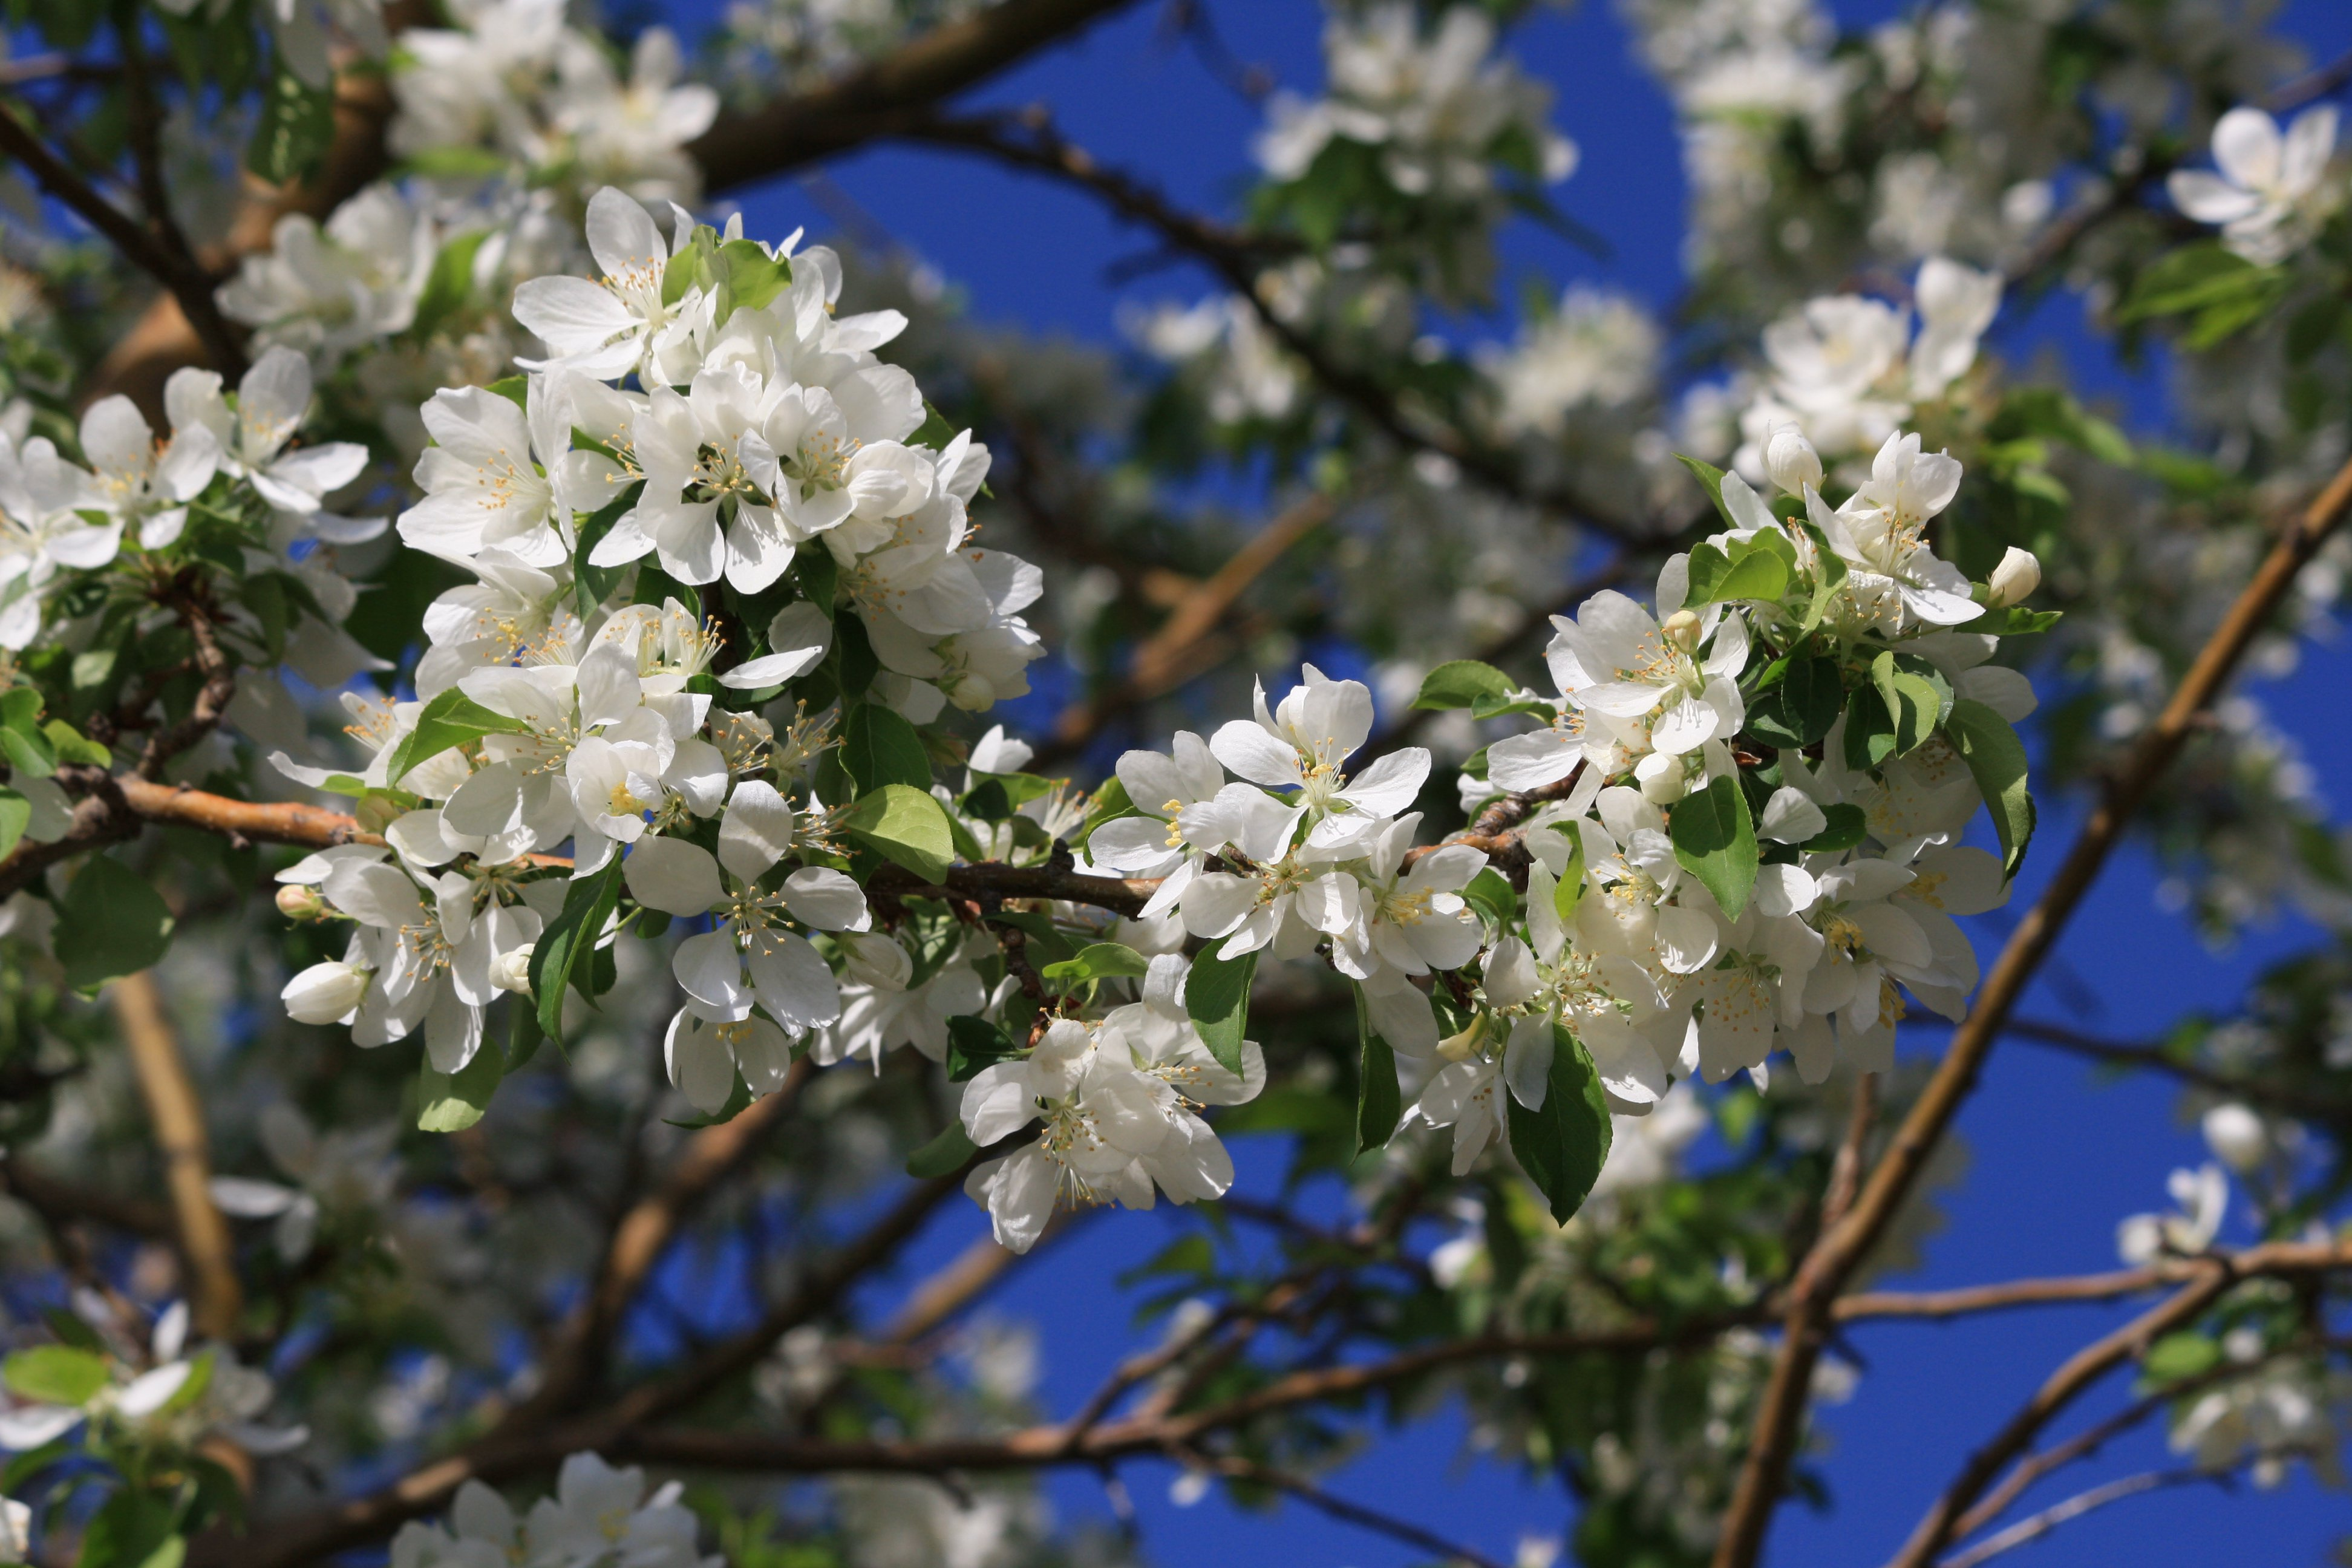 White flowers on crabapple tree picture free photograph photos white flowers on crabapple tree mightylinksfo